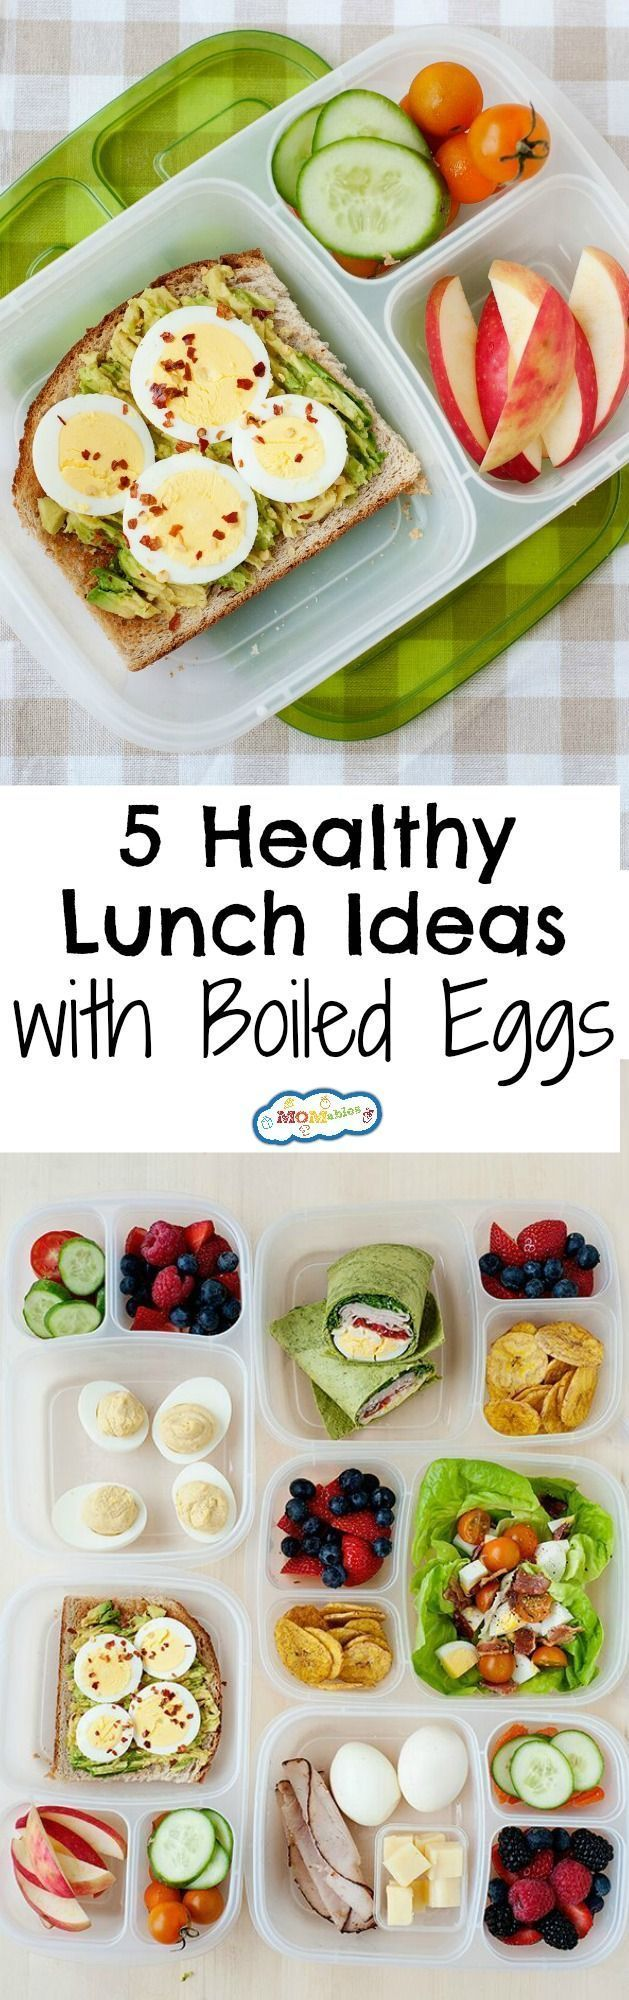 healthy school and office lunch ideas | kimbers lunches | pinterest